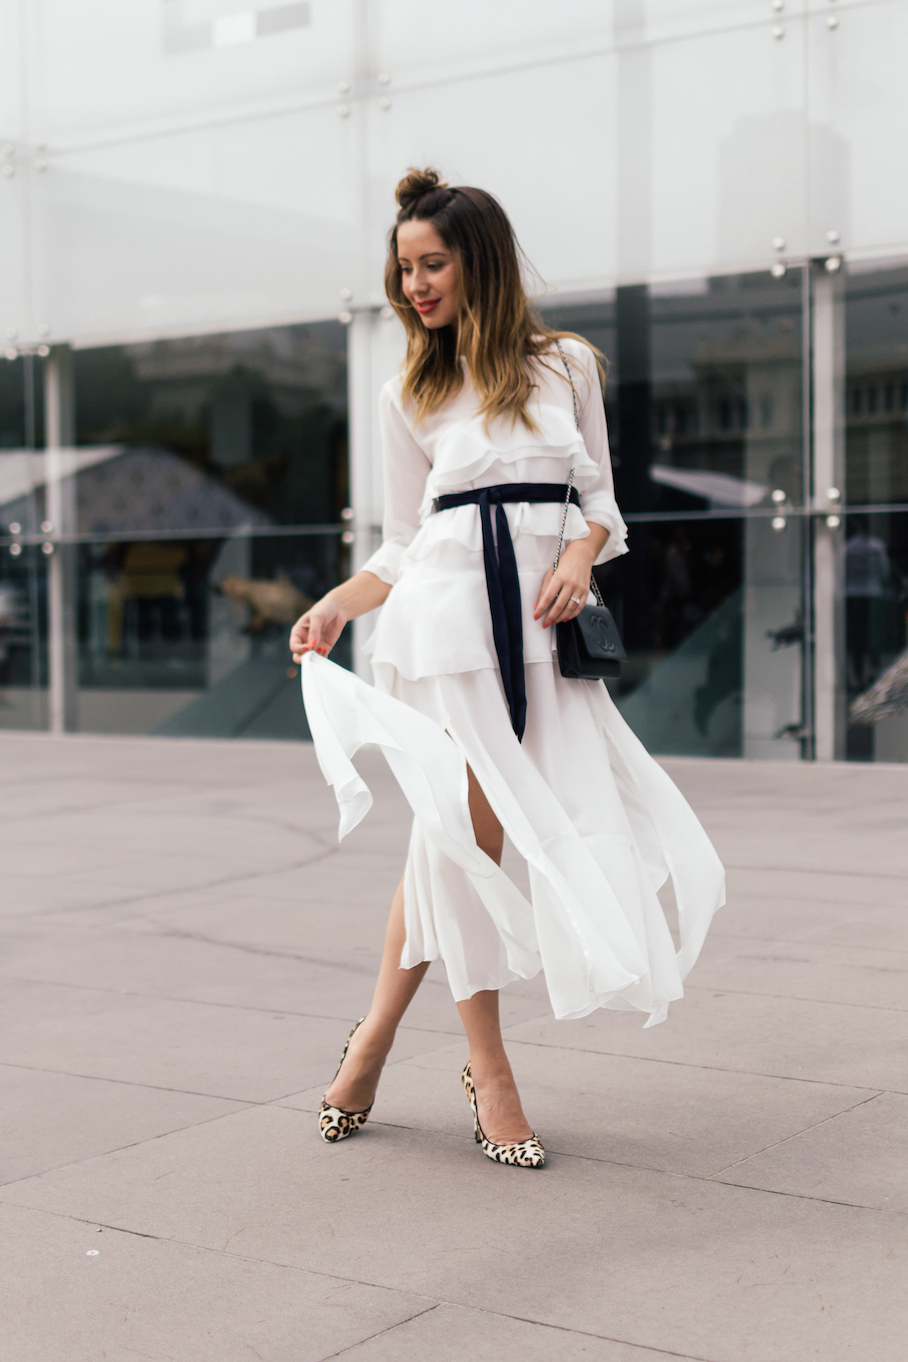 "Vic: Jasmin Howell, Blogger - <a href=""http://www.friendinfashion.com.au/"" target=""_blank"">Friend in Fashion</a>, VAMFF. ""My style's feminine, classic, tailored."" Photo: Dimitra Koriozos"